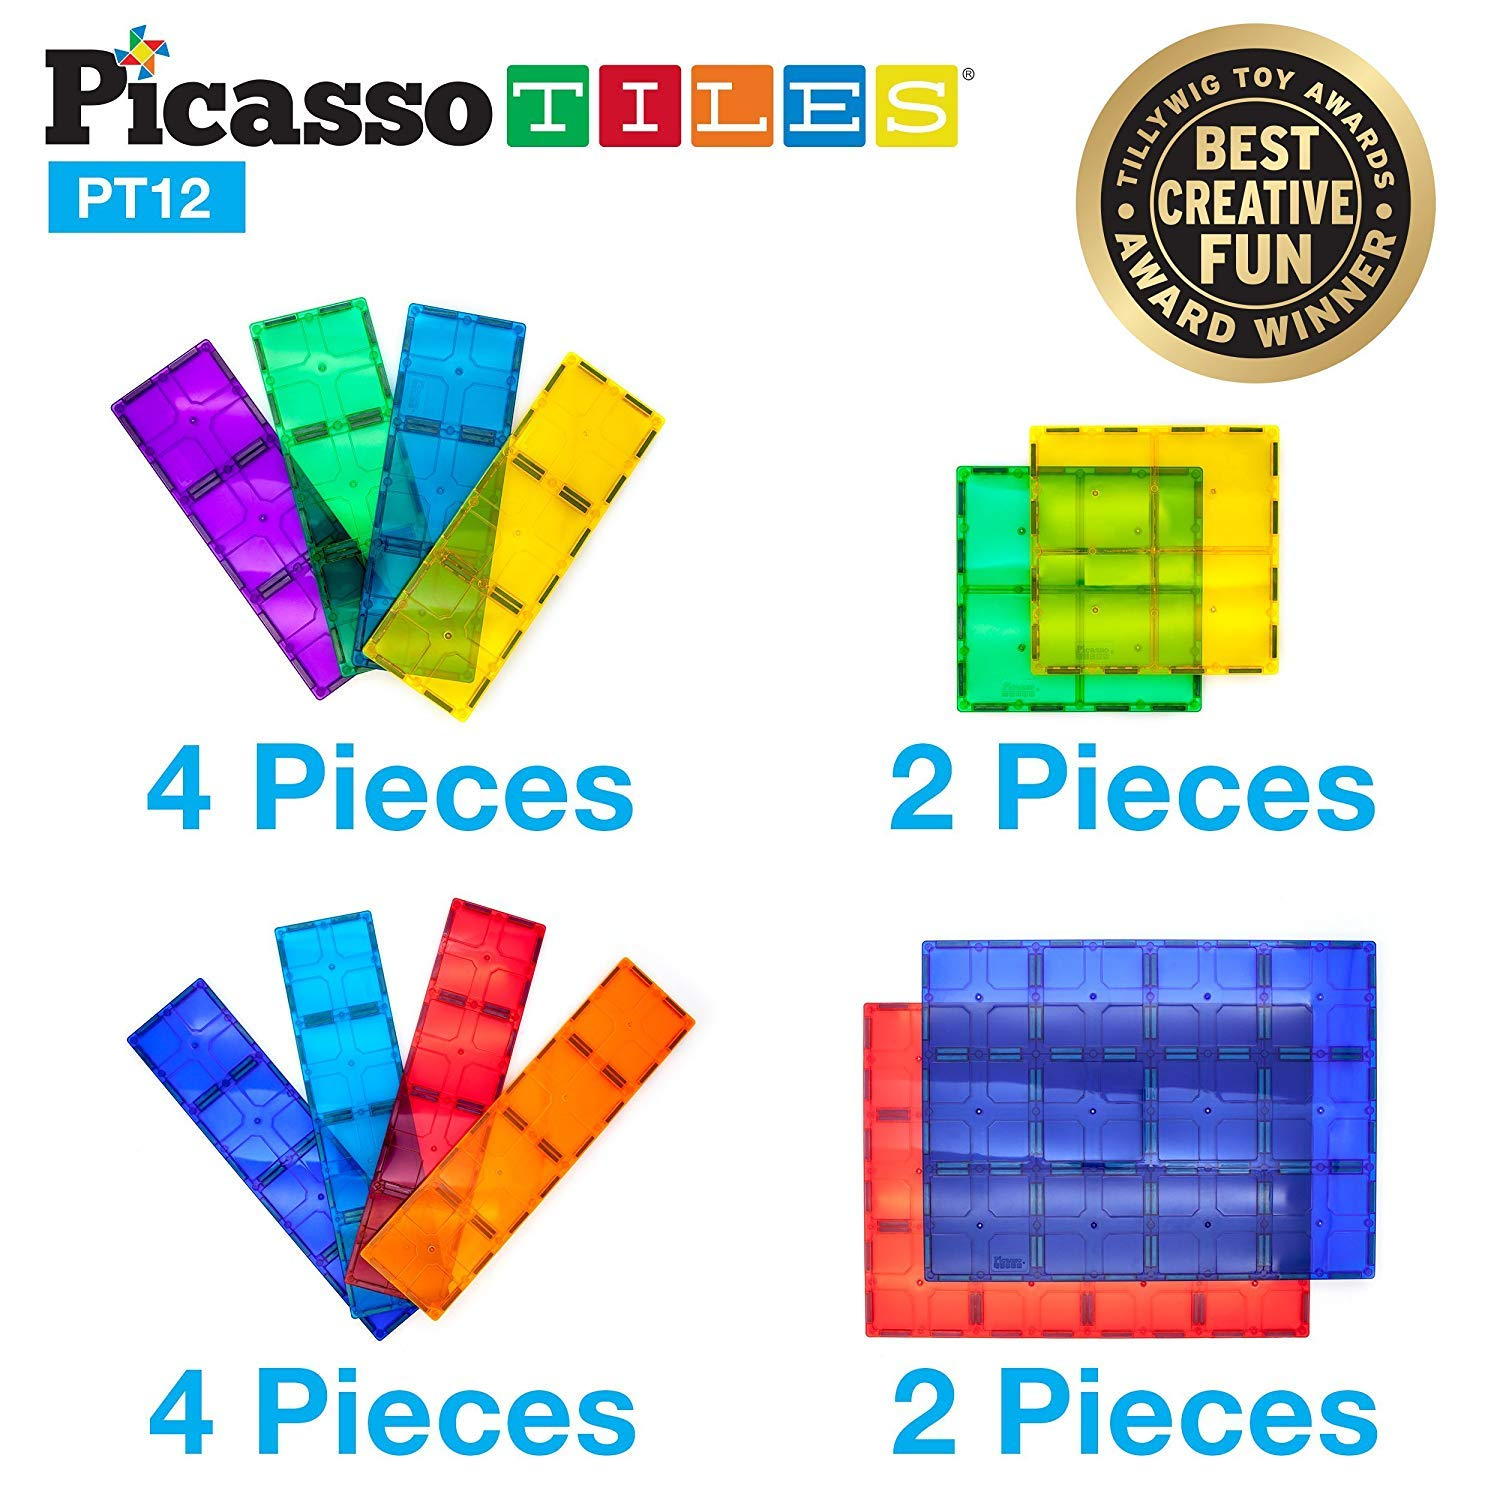 PicassoTiles Kids Toy Magnetic Building Blocks Magnet Tiles Supersized 12pc Large Stabilizer Base Jumbo XL Plate Foundation Education Construction Kit Engineering STEM Children Learning Stacking Set by PicassoTiles